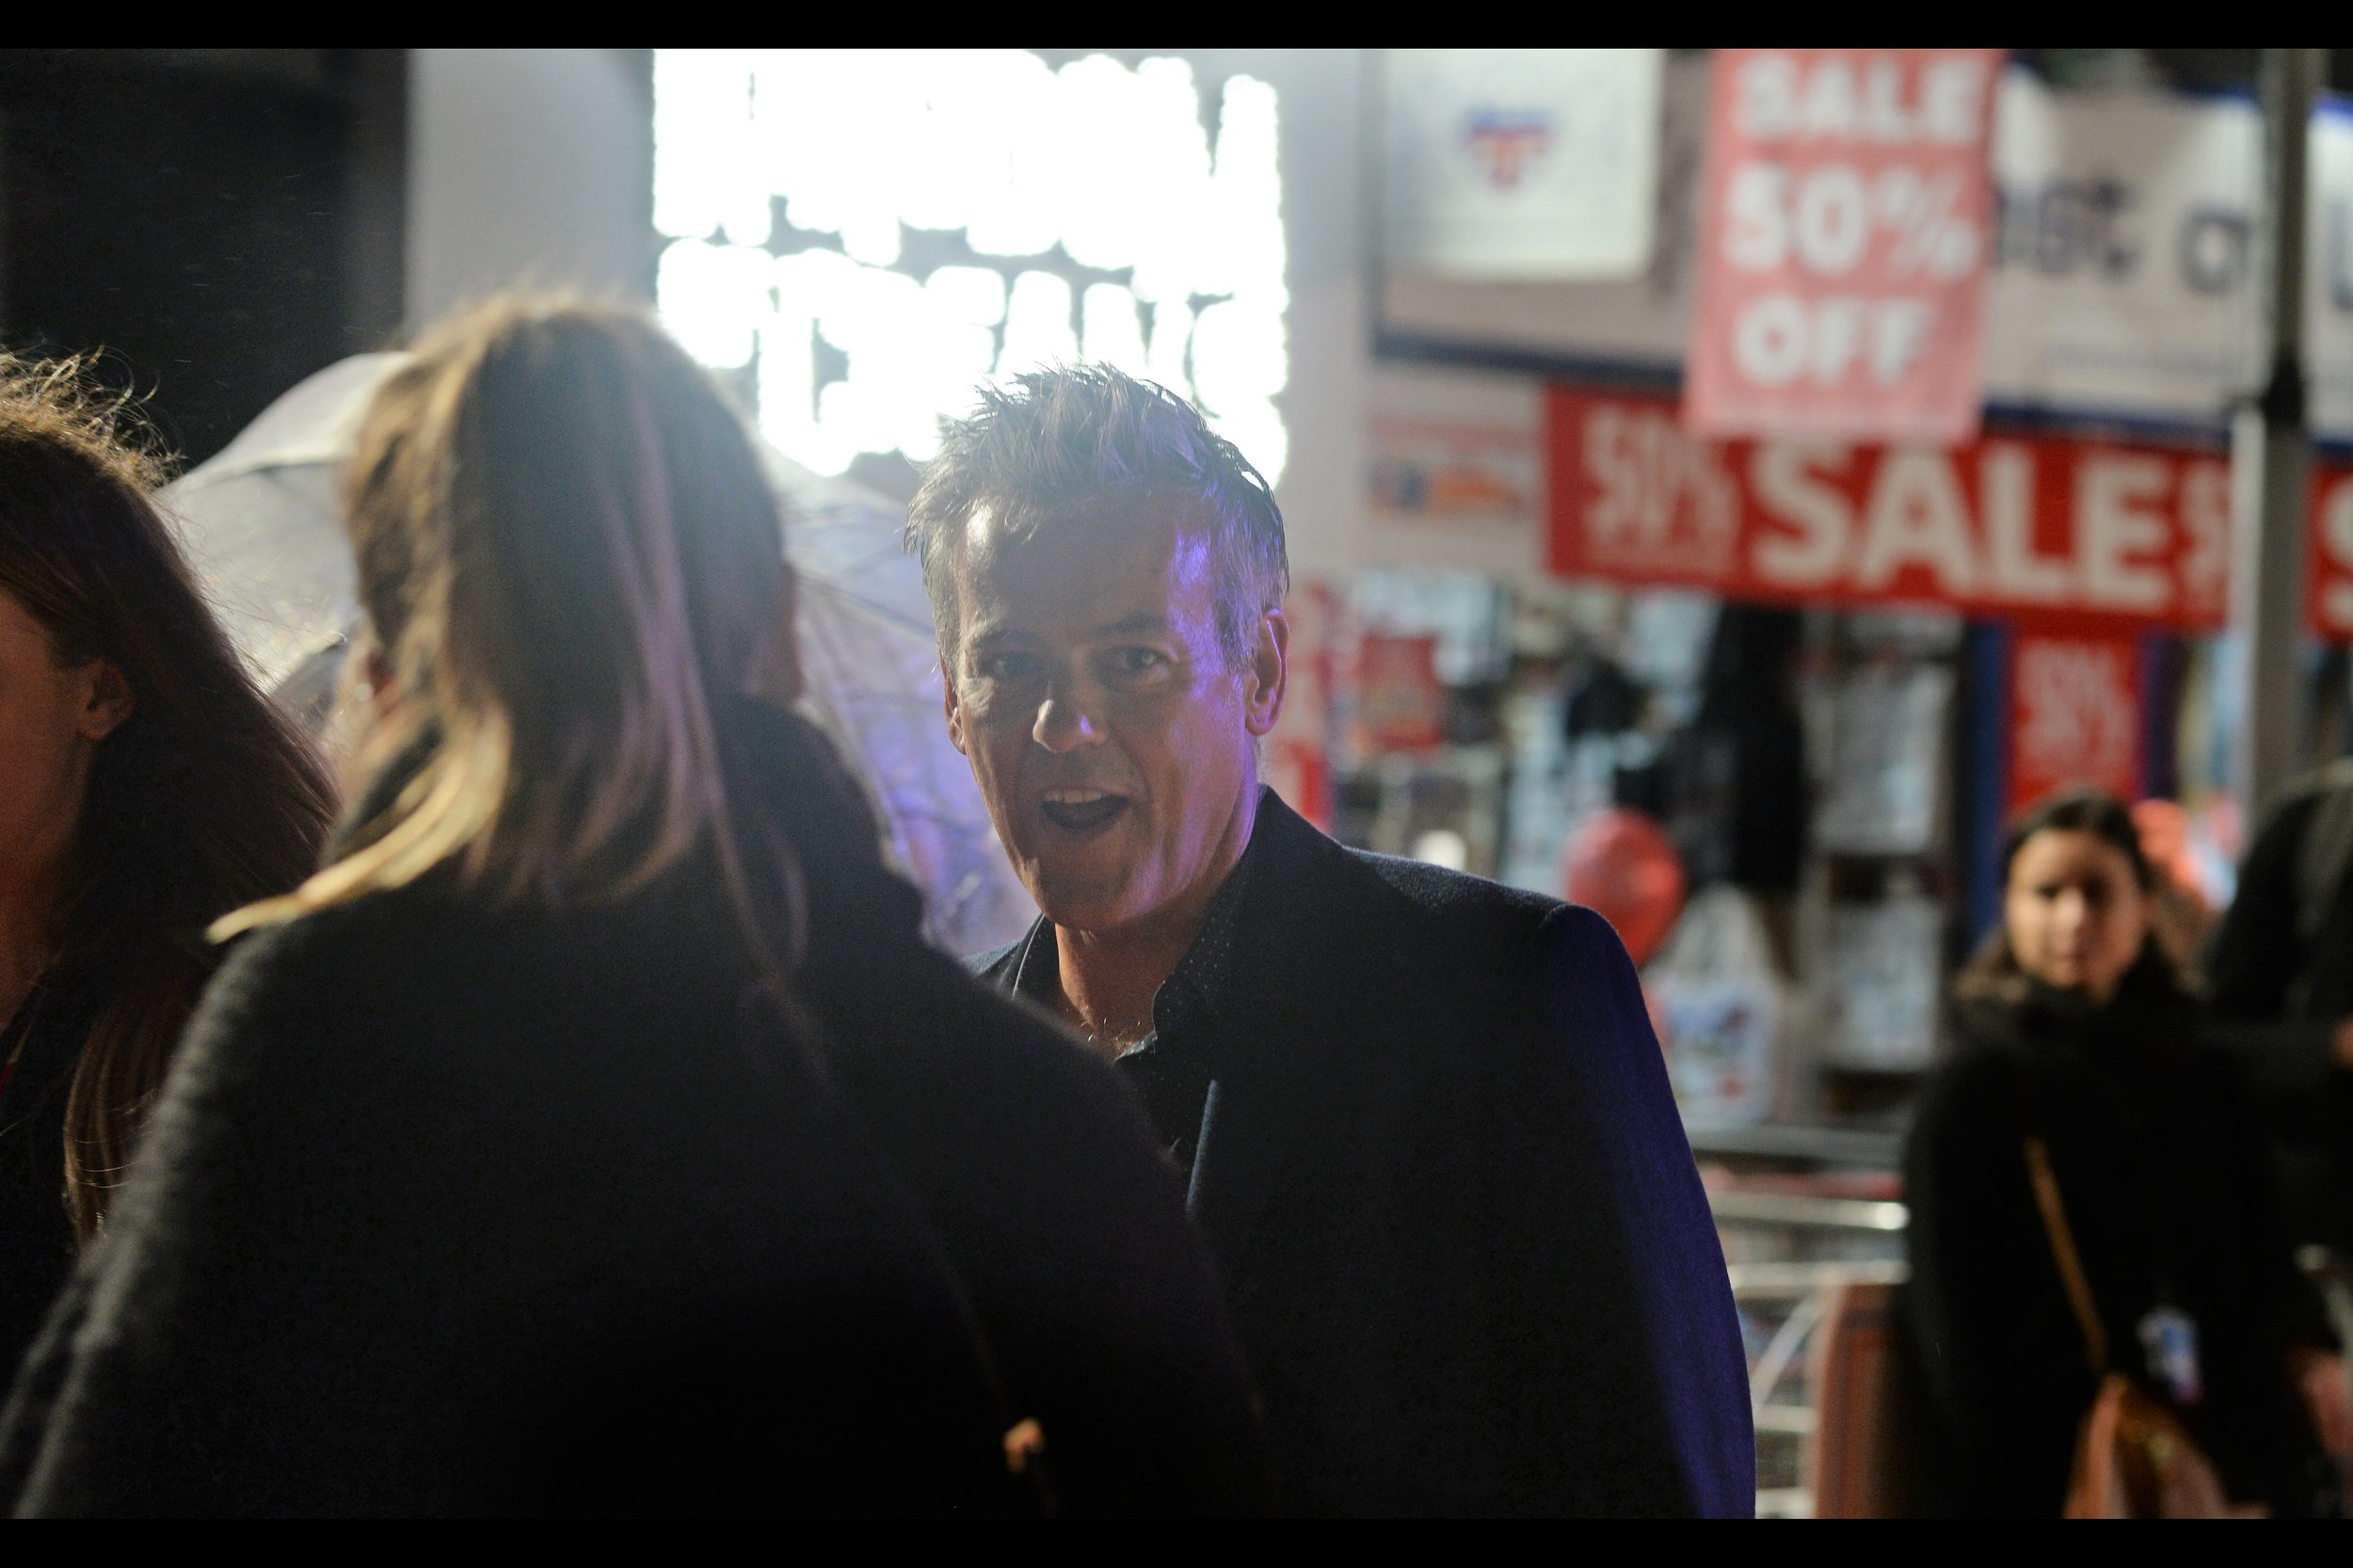 """I don't know who this is, but the Paparazzi did photograph him, and also he's in front of what's fast becoming my favorite Leicester Square backdrop: the Crest of London  """"50% SALE""""  signage."""